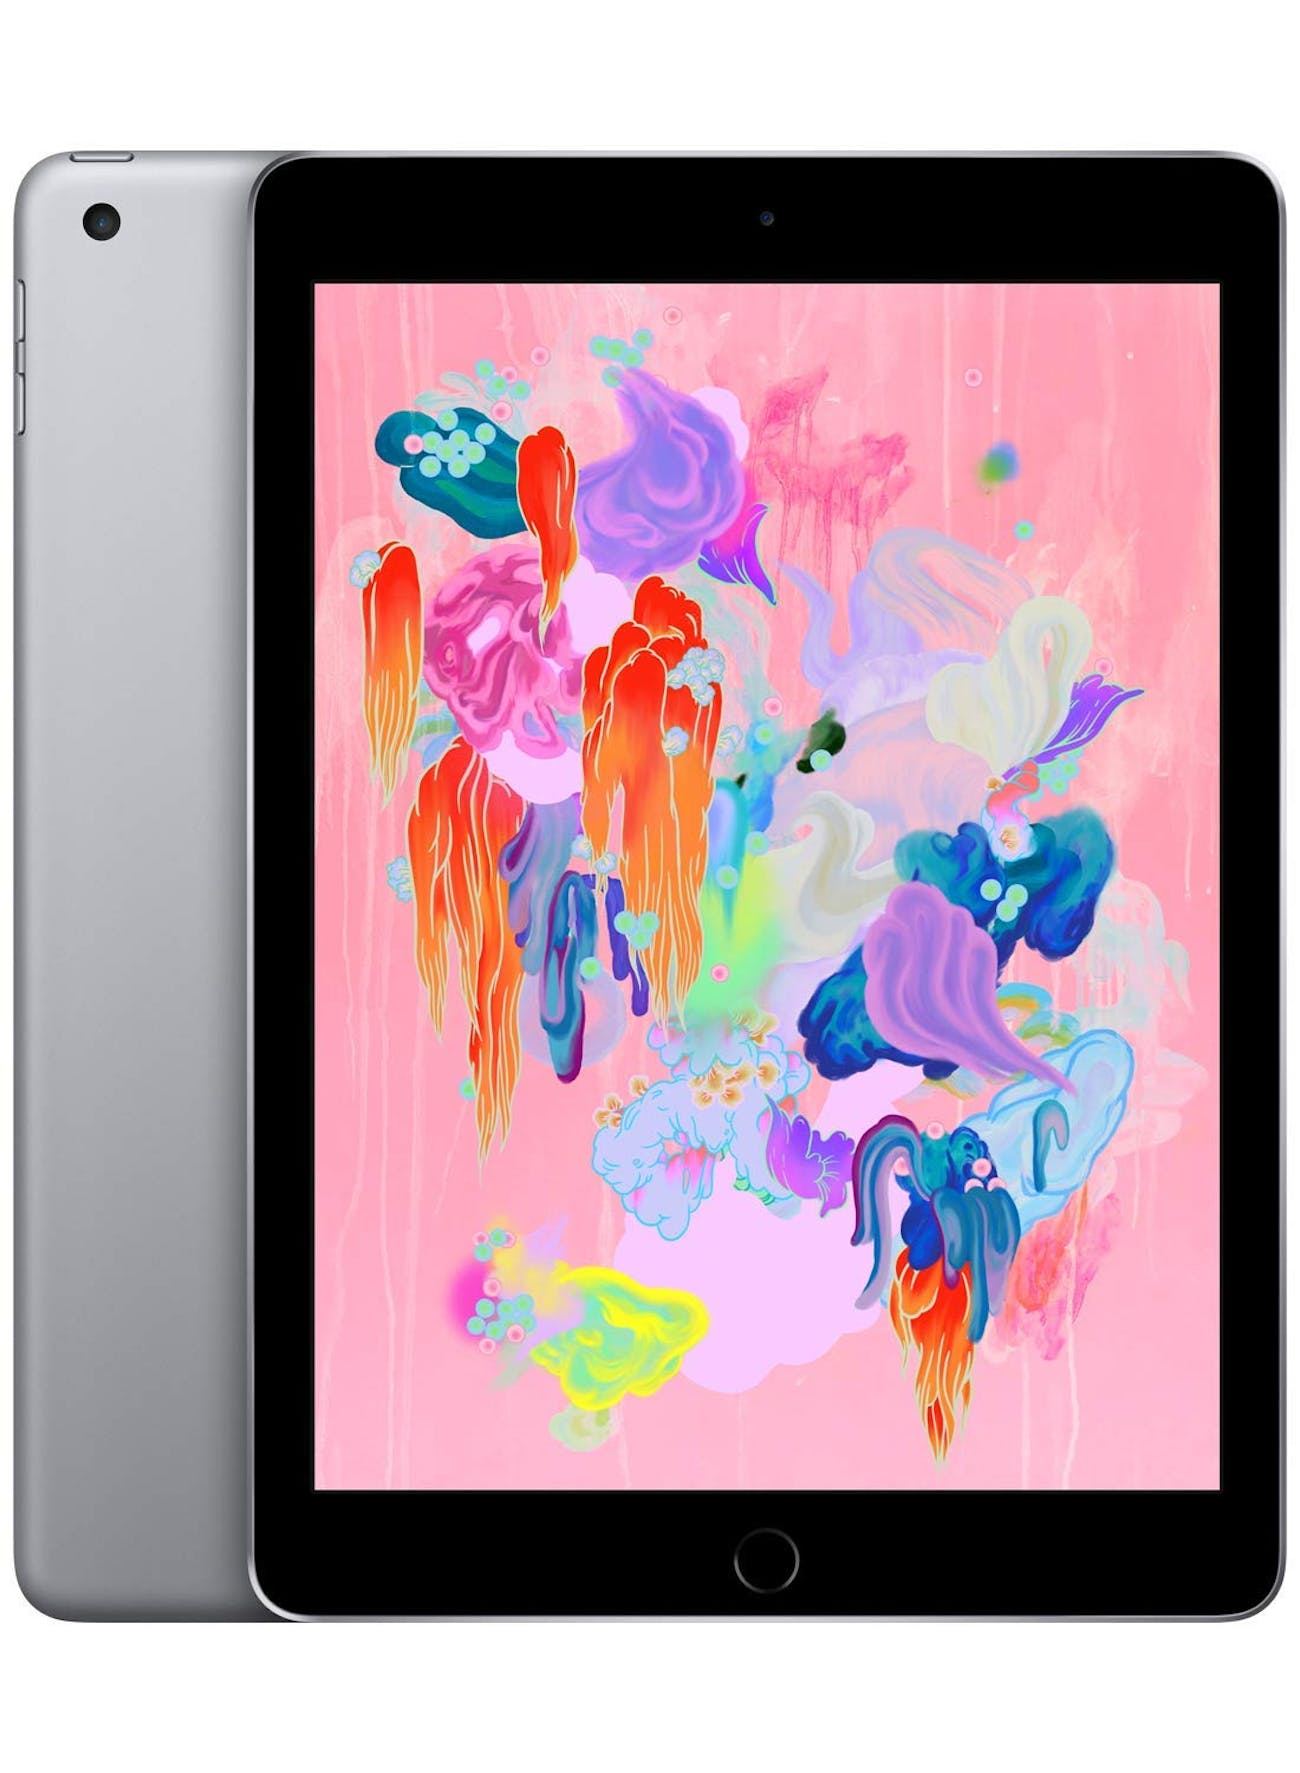 Apple iPad (Wi-Fi, 128GB) - Space Gray (Latest Model), tablet, iOS